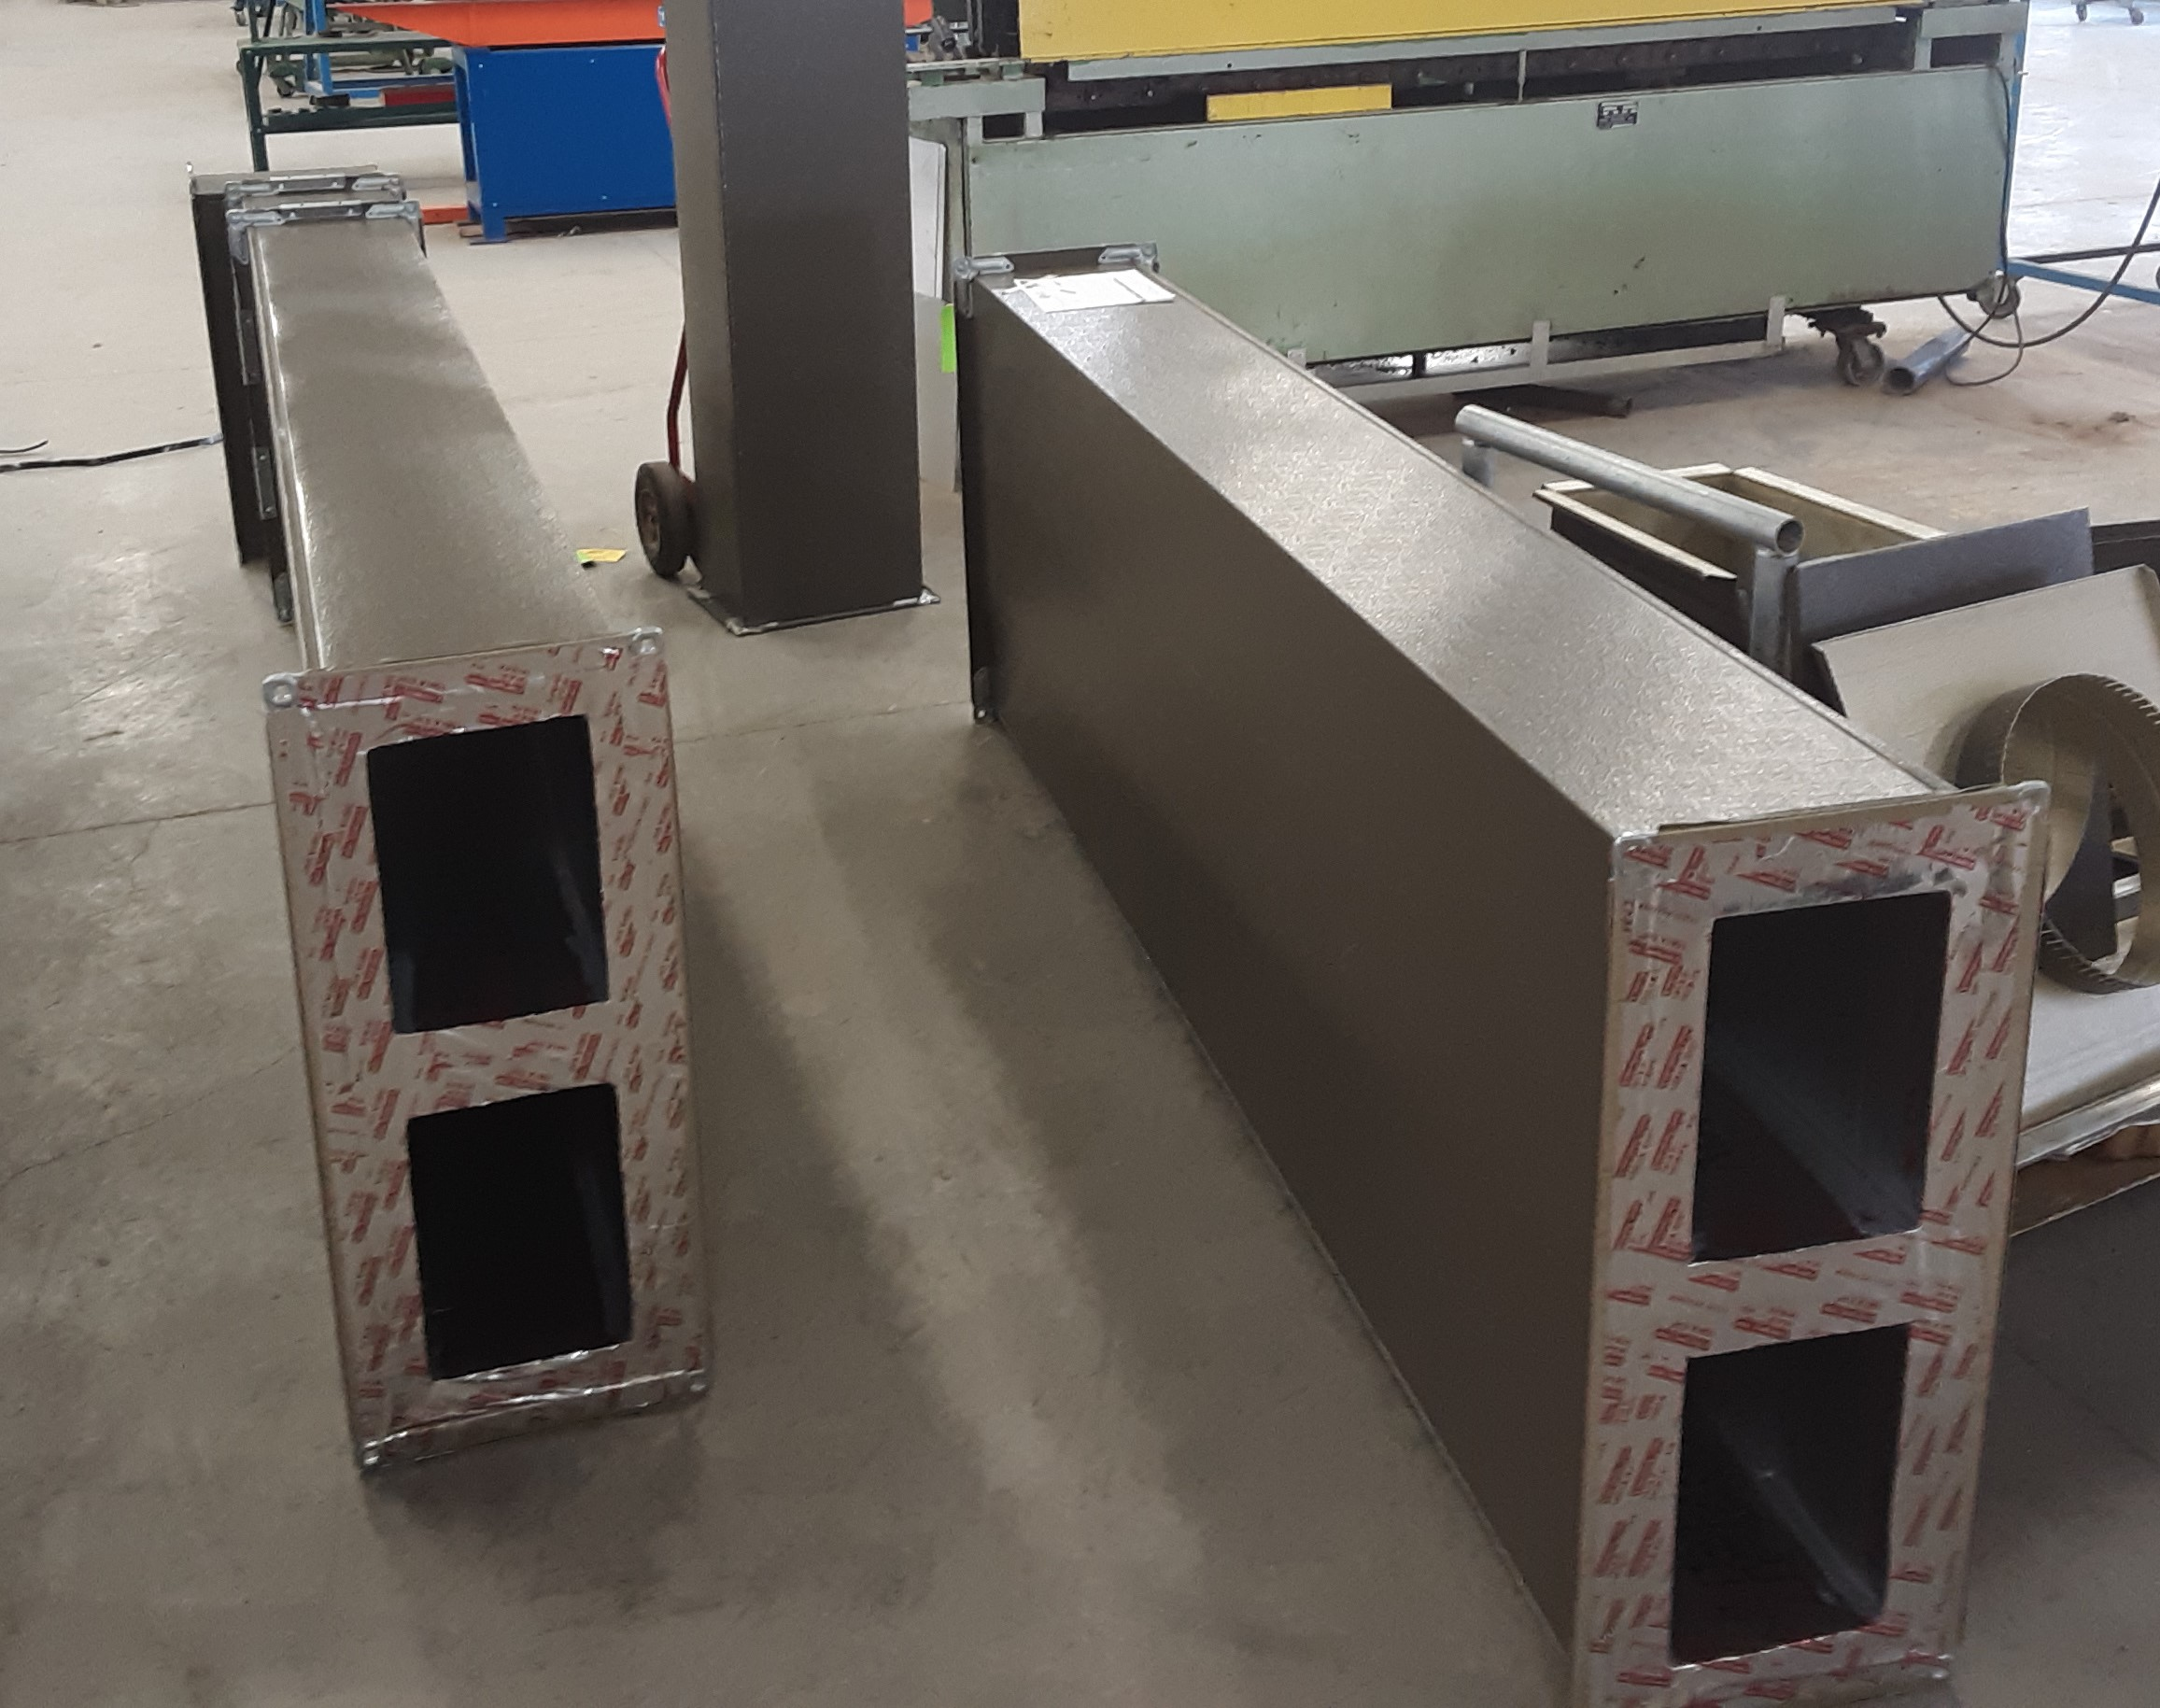 The engineer also liked the concept of utilizing two ducts into one exhaust system for ease of install and limiting the amount of ductwork showing on the side of the building.